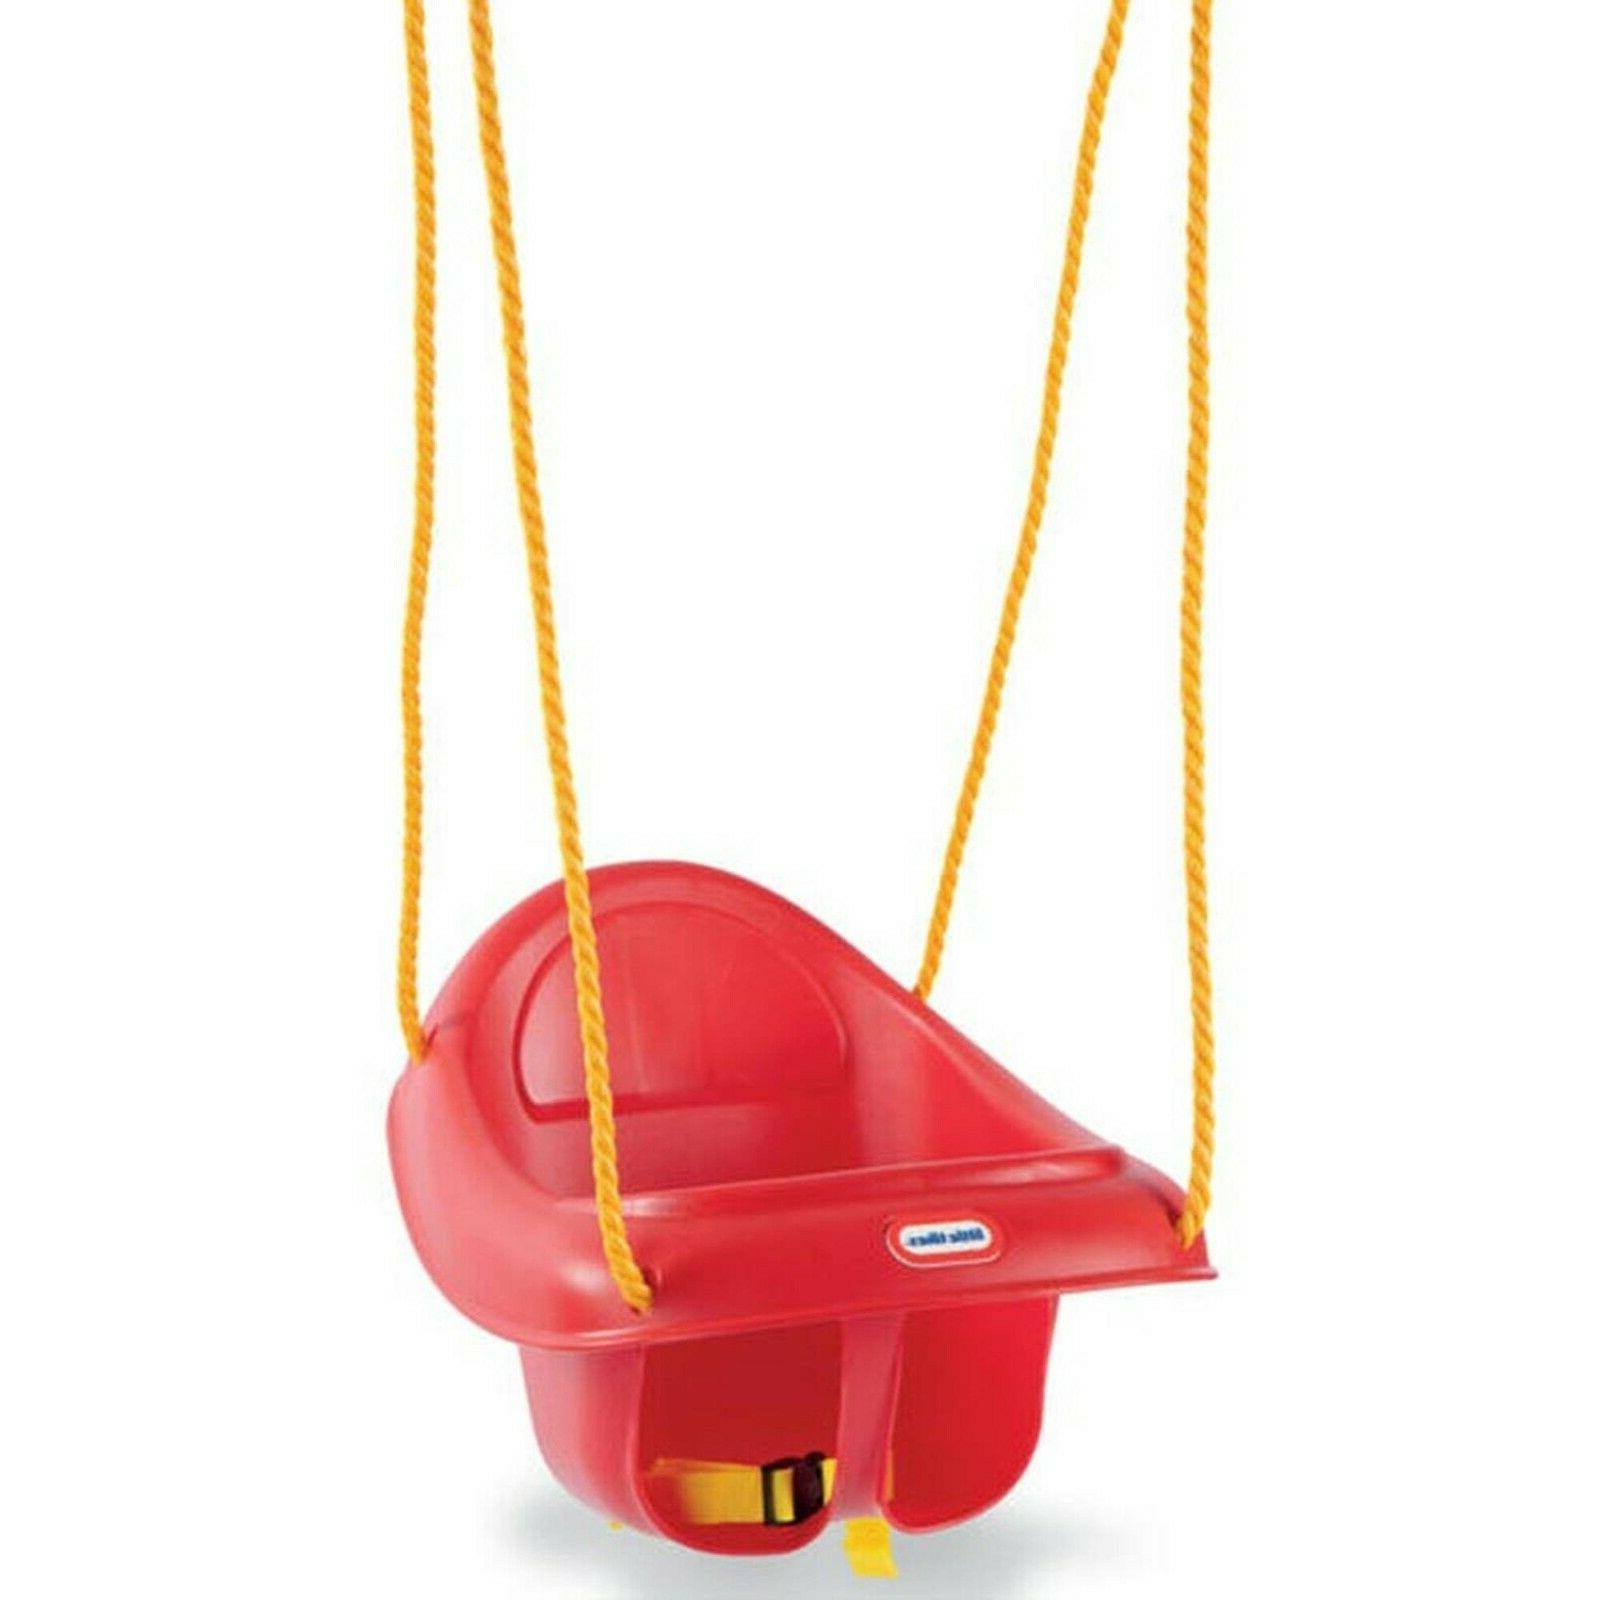 Toddler Infant Swing Seat Safety Outdoor Porch Heavy Duty Fu